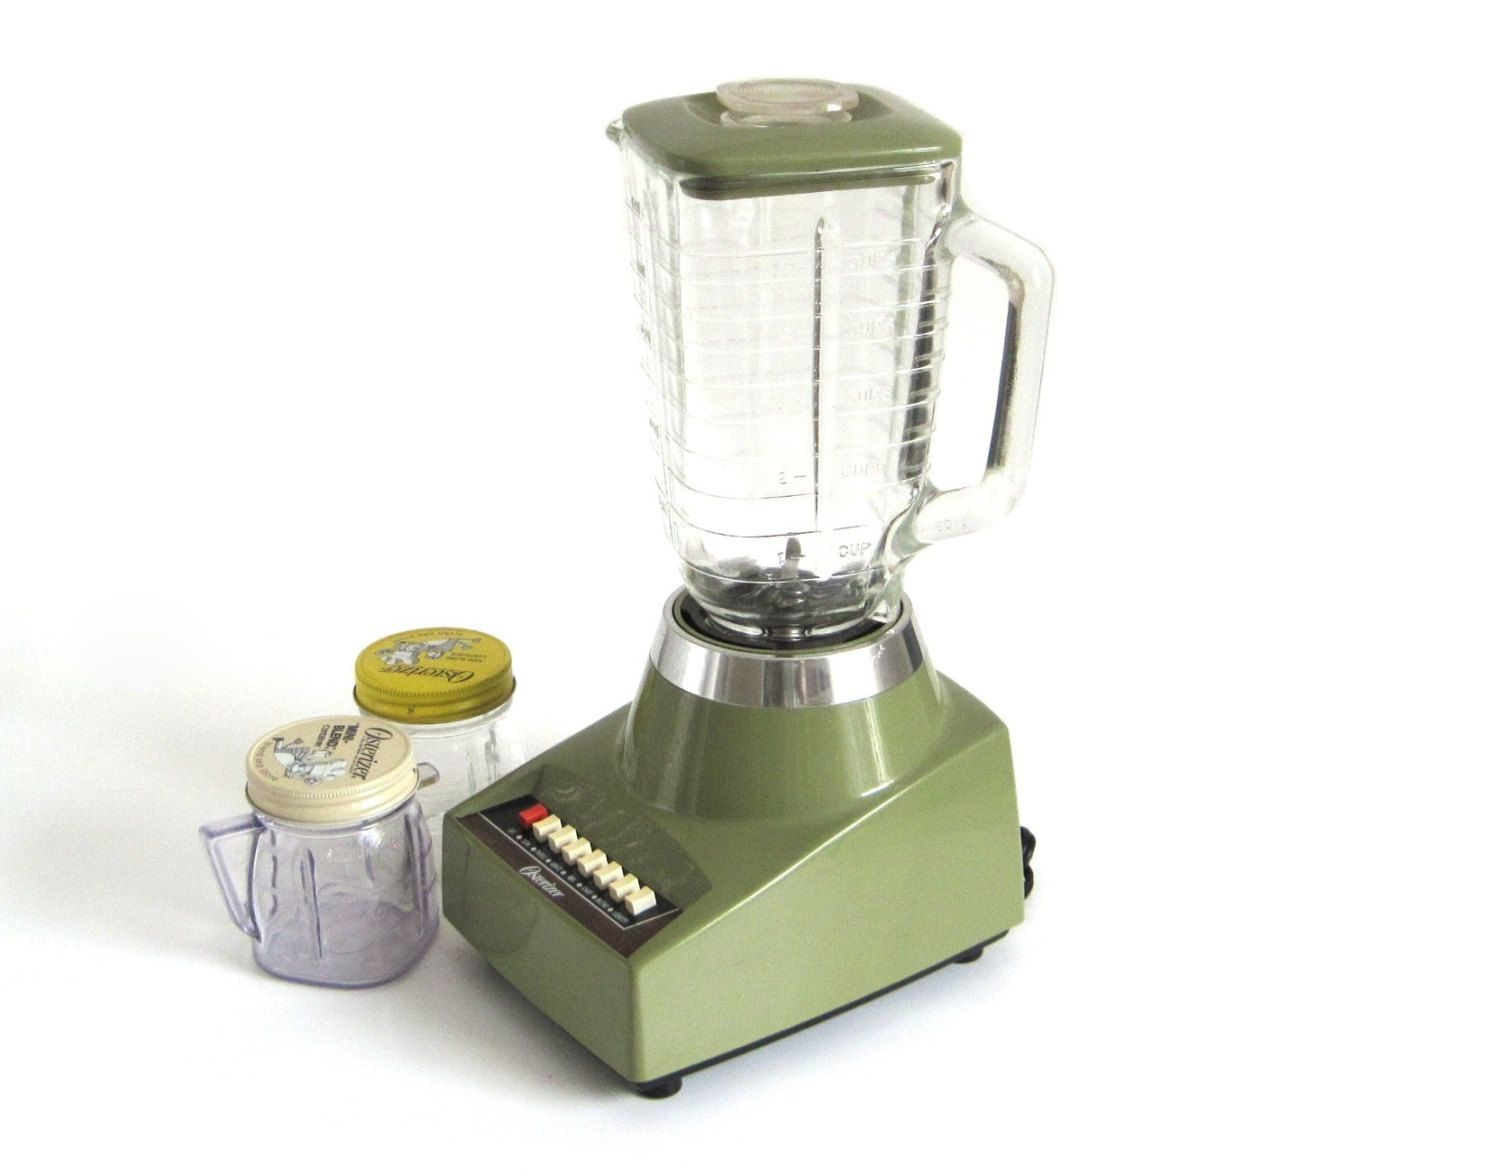 Oster Blender Made in USA 1970s Avocado Green Kitchen Appliance ...